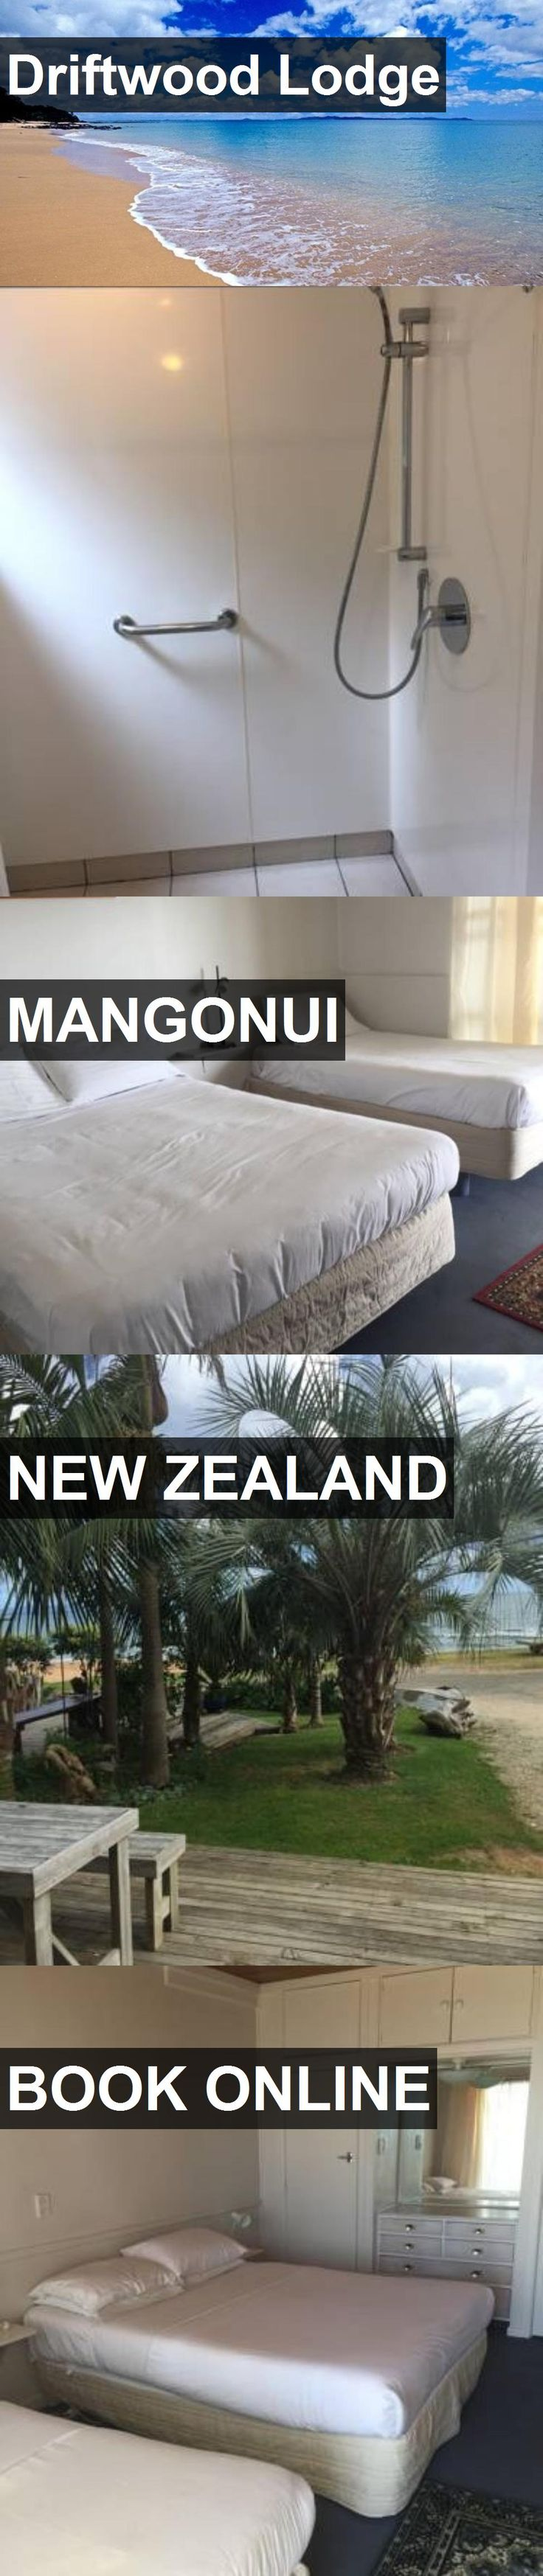 Hotel Driftwood Lodge in Mangonui, New Zealand. For more information, photos, reviews and best prices please follow the link. #NewZealand #Mangonui #travel #vacation #hotel